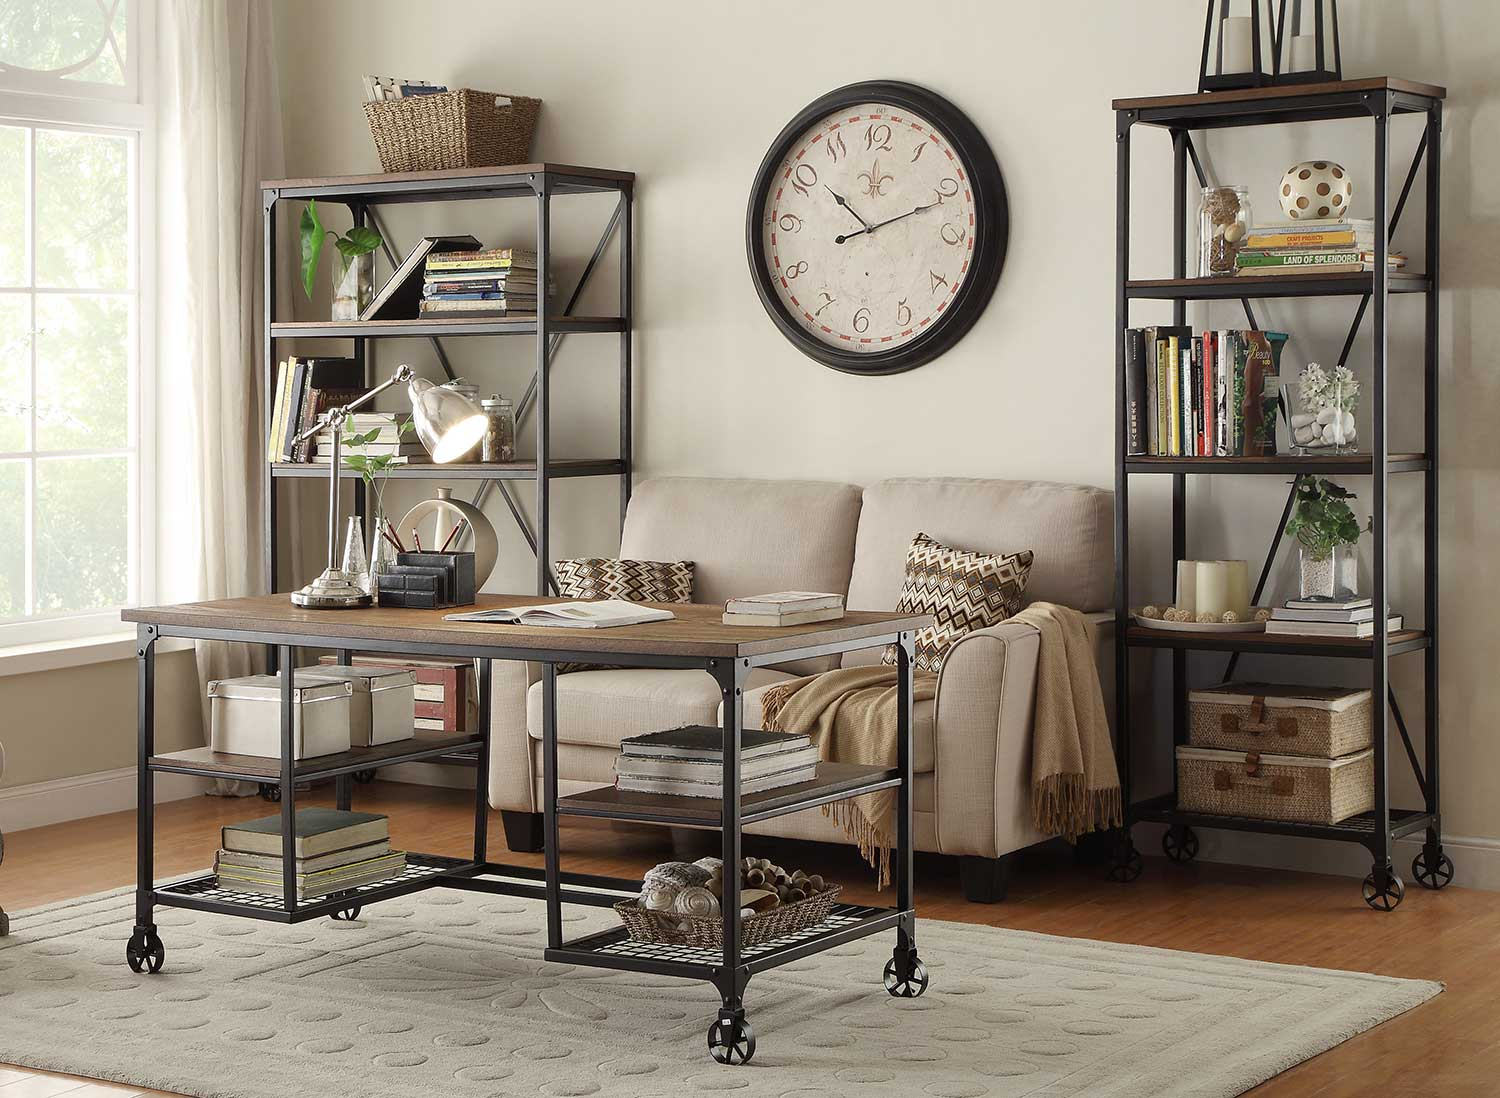 Homelegance Millwood Entertaiment Center Set - Weathered Wood Table Top with Metal Framing